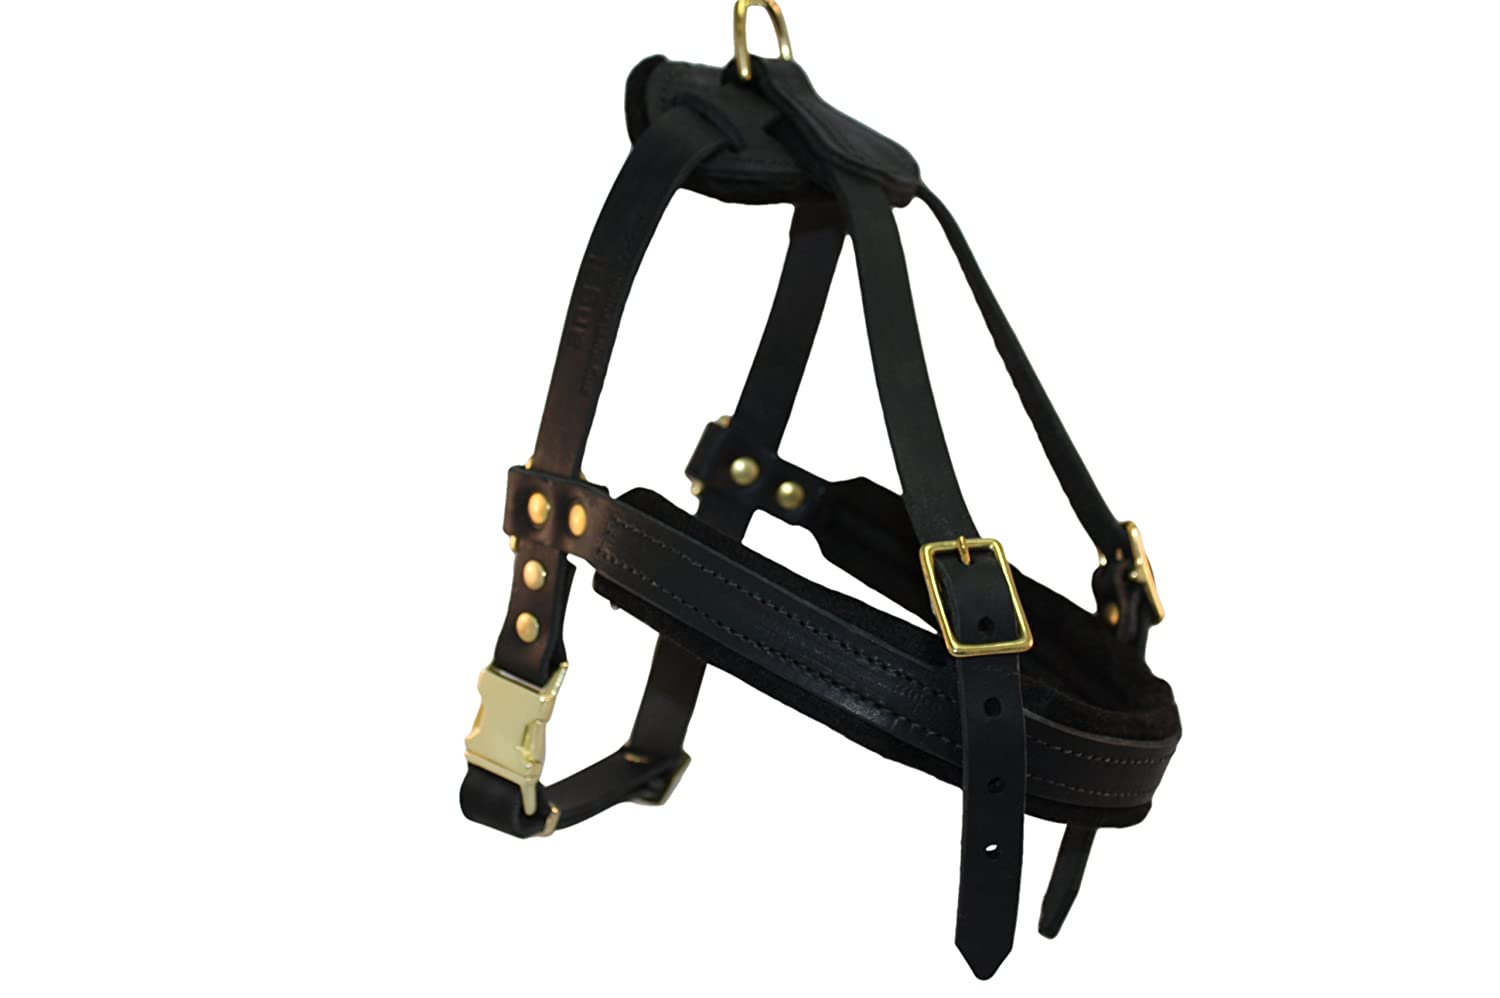 Angel Pet Supplies Inc. Leather Dog Harness, Small, Black (Aspen), 100% Genuine English Bridle Leather, For Breeds 3050 lbs. Chest  2631 in, Neck 1824 in, Chest Strap 19